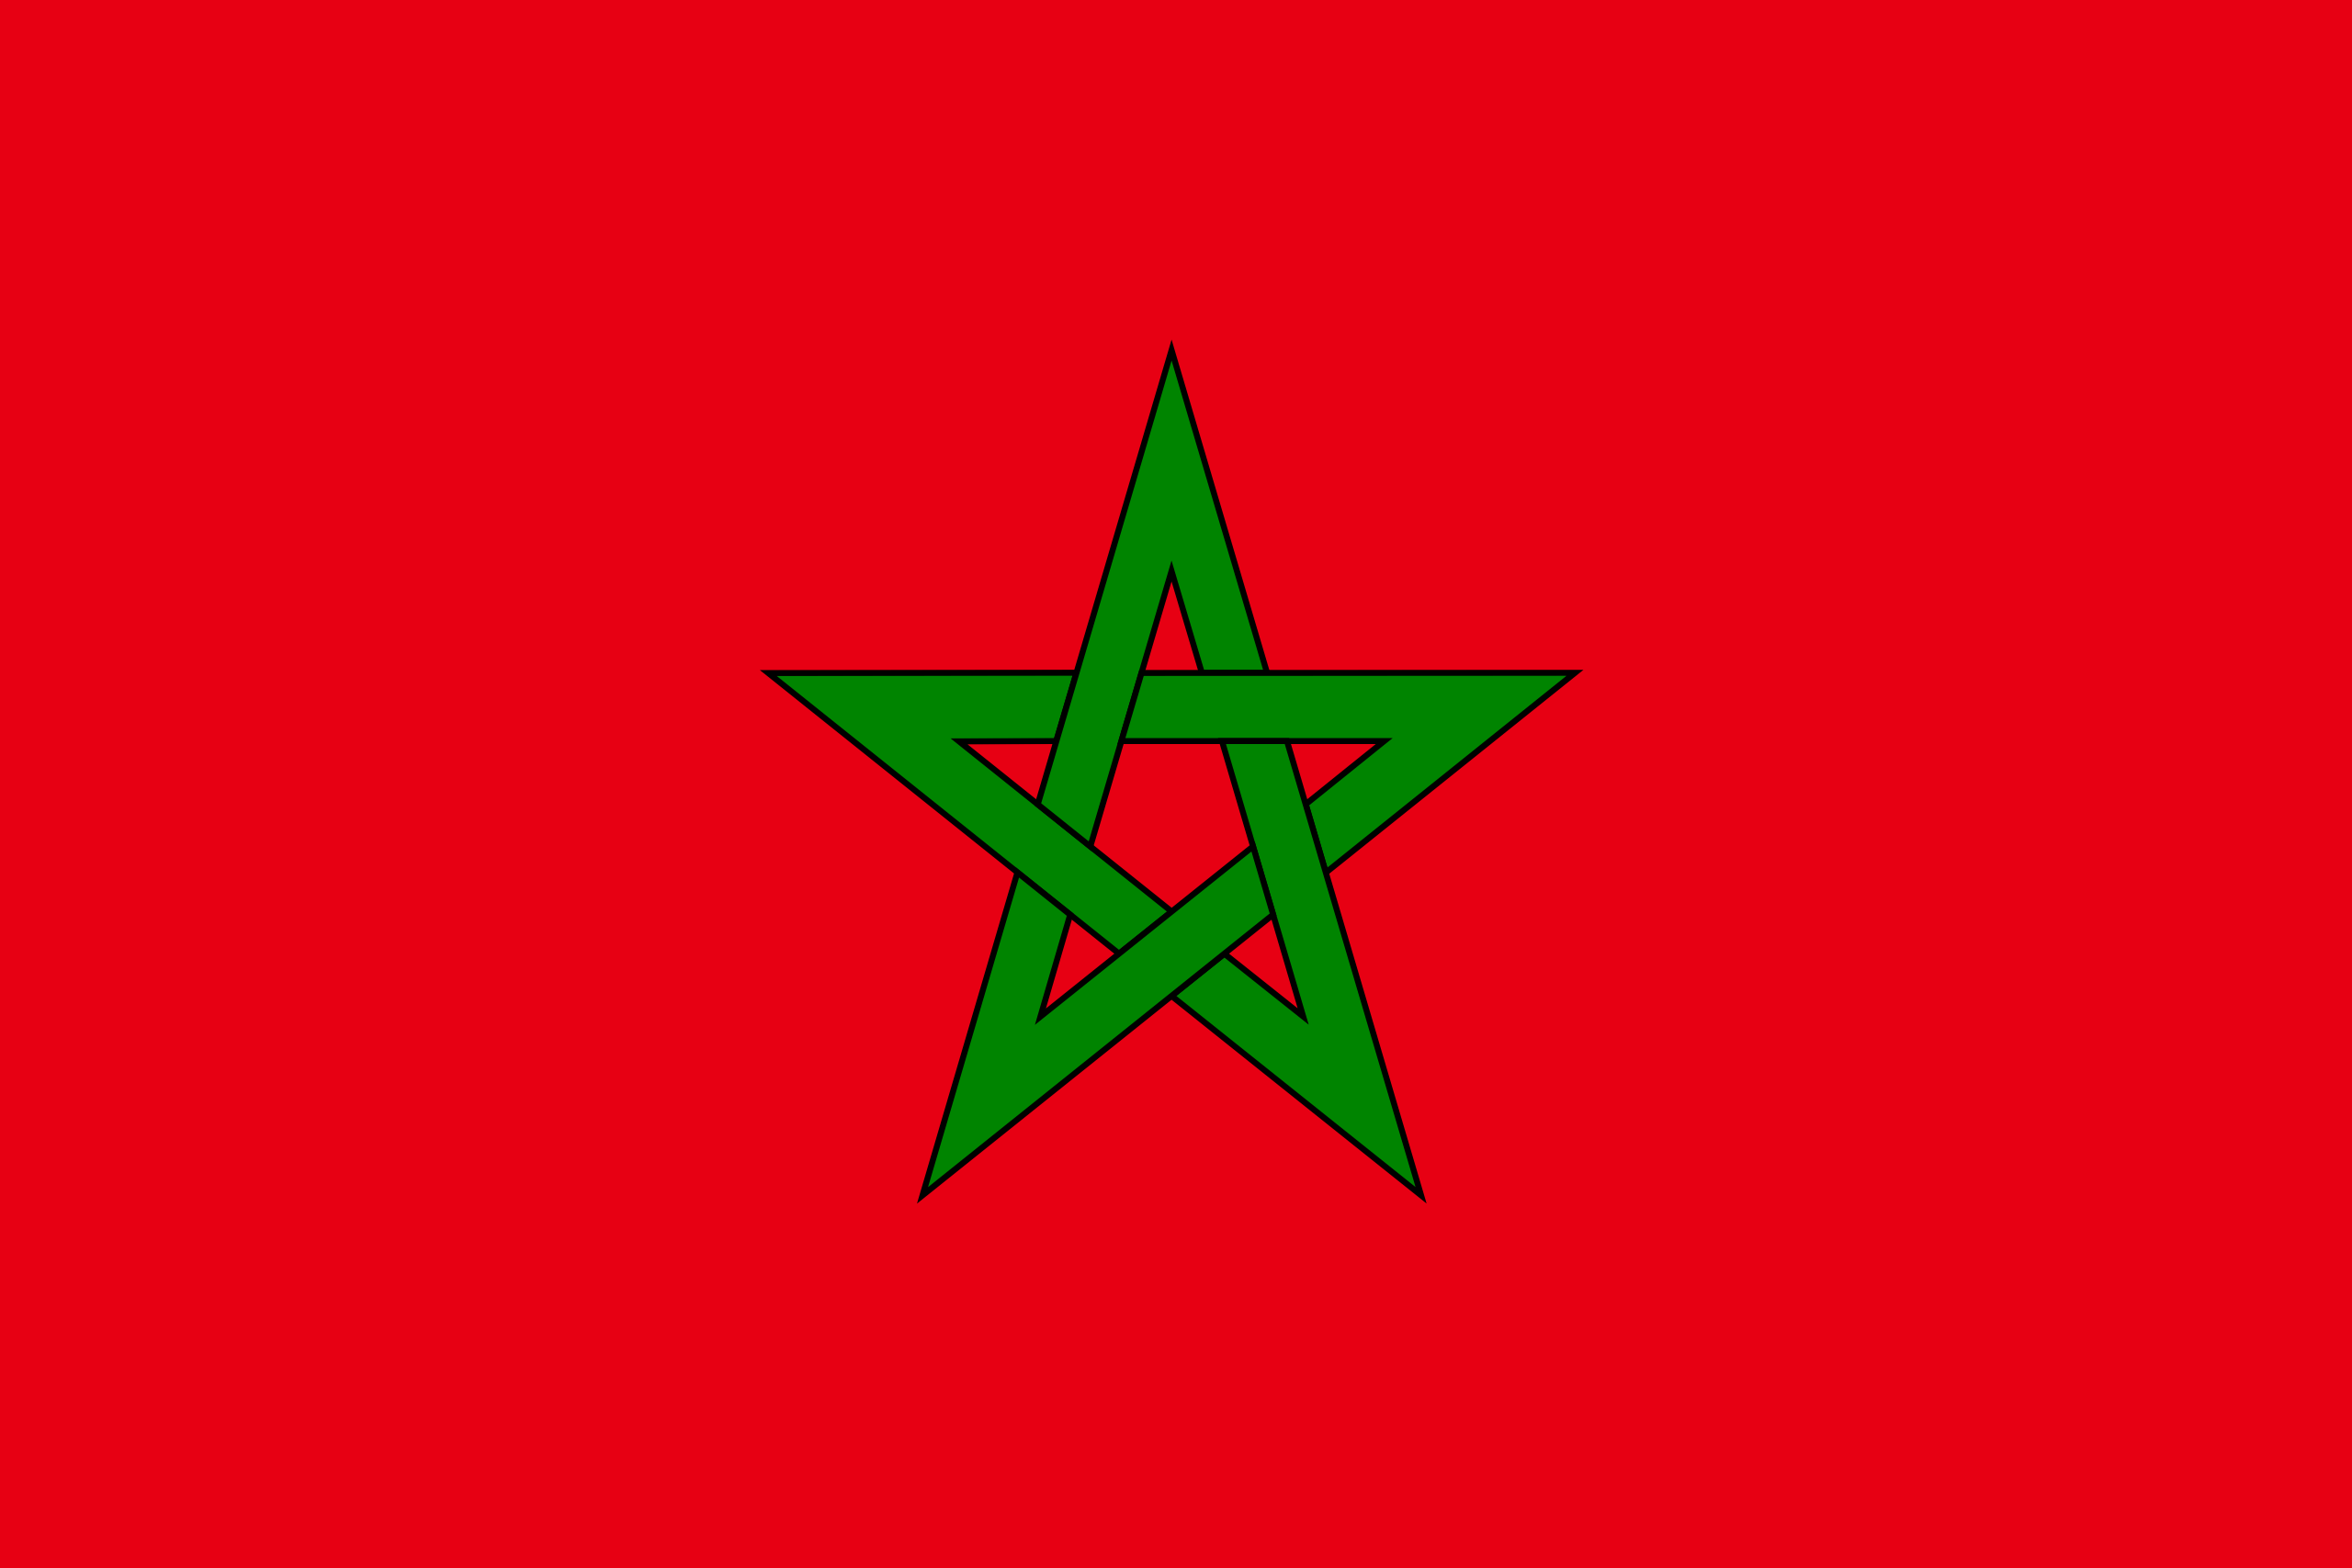 The flag of Morocco consists of a red base with a green outlined